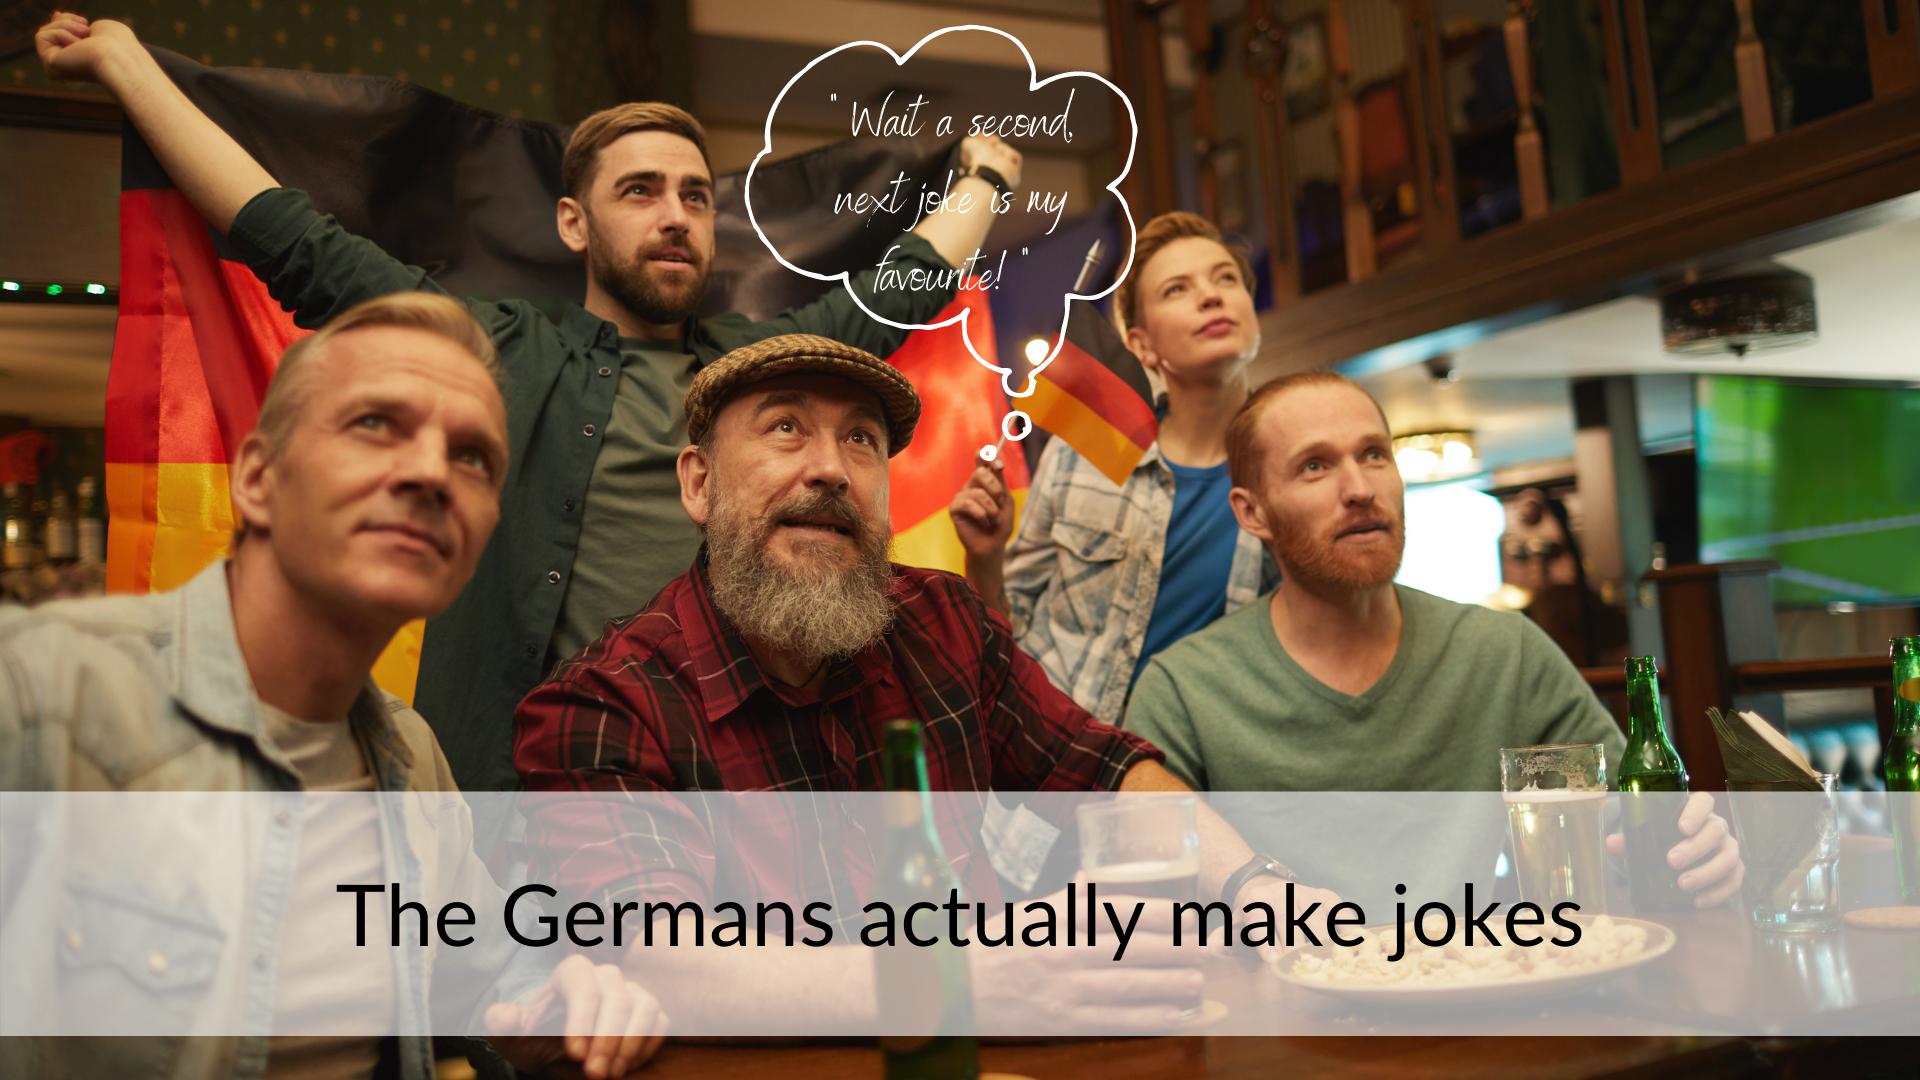 The Germans make jokes